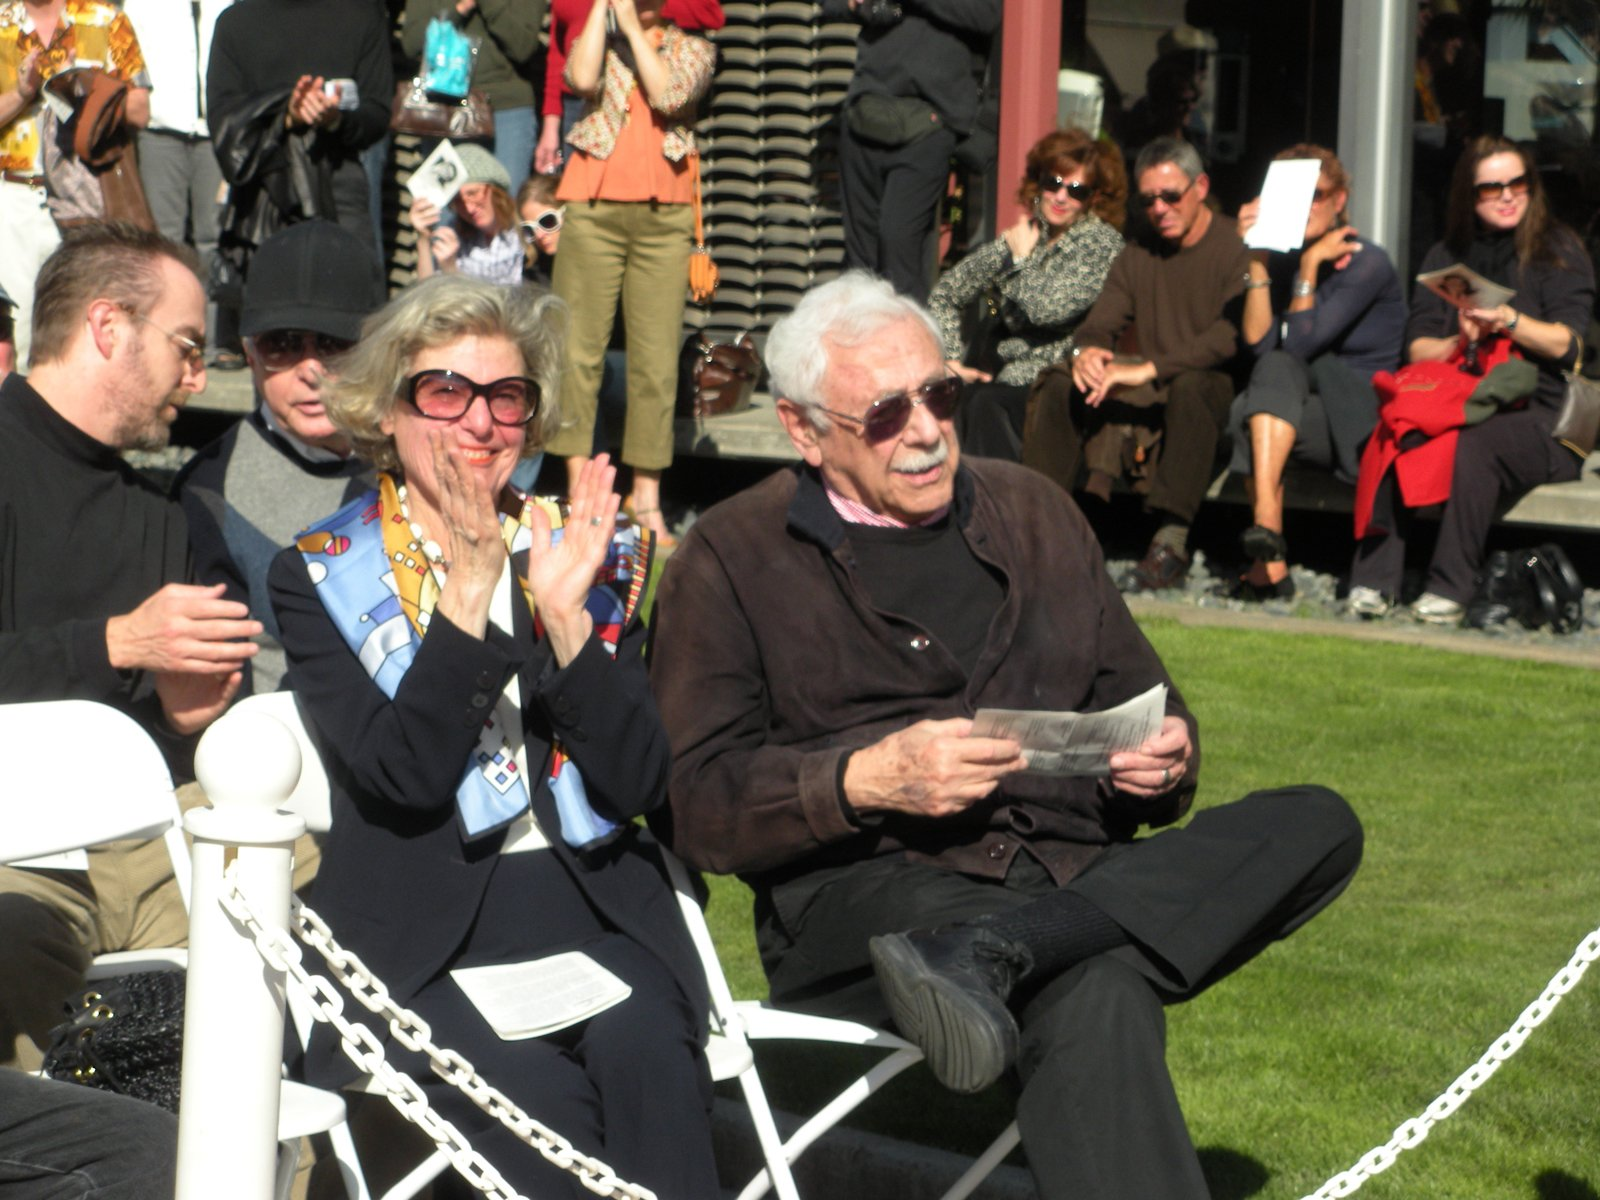 At the 4th Annual Modernism Week in Palm Springs, architect William Krisel was honored with a star bearing his name along the city's Walk of Stars. Krisel is shown above at the ceremony with his wife, Corinne.  Photo 3 of 7 in Palm Springs, California